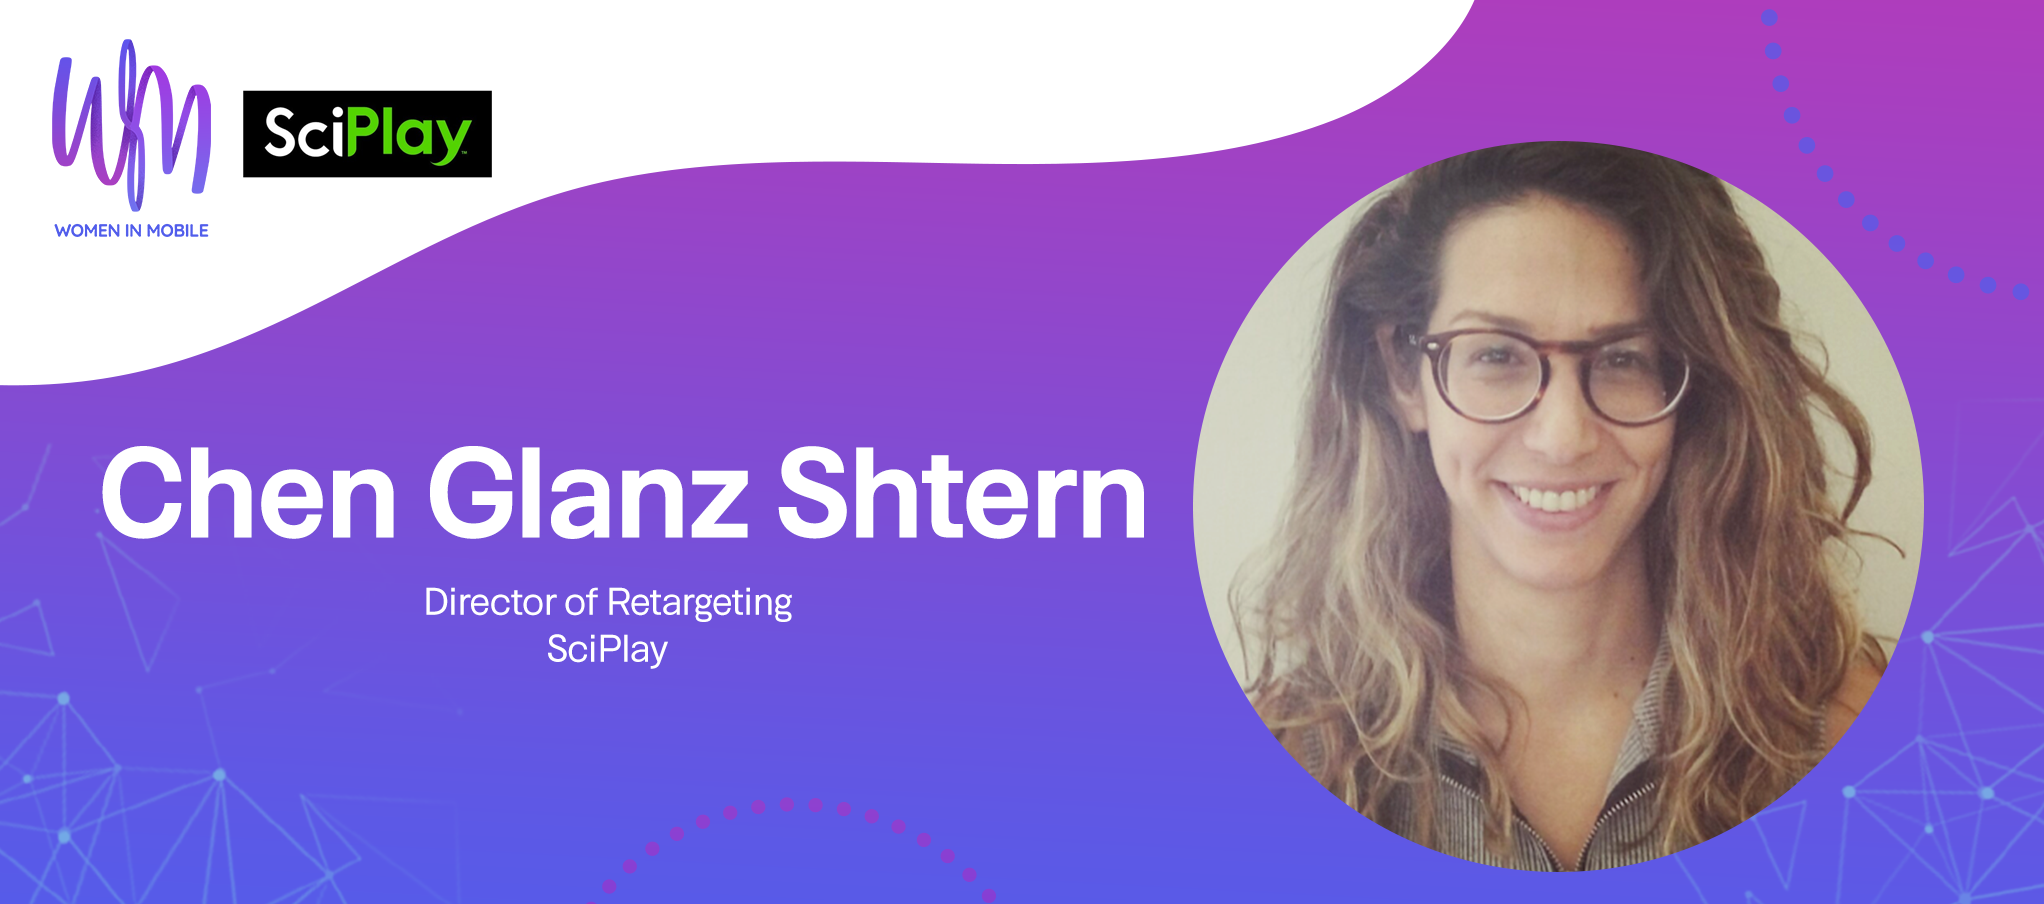 Chen Glanz Shtern, Director of Retargeting, at SciPlay at Aarki's Women in Mobile series